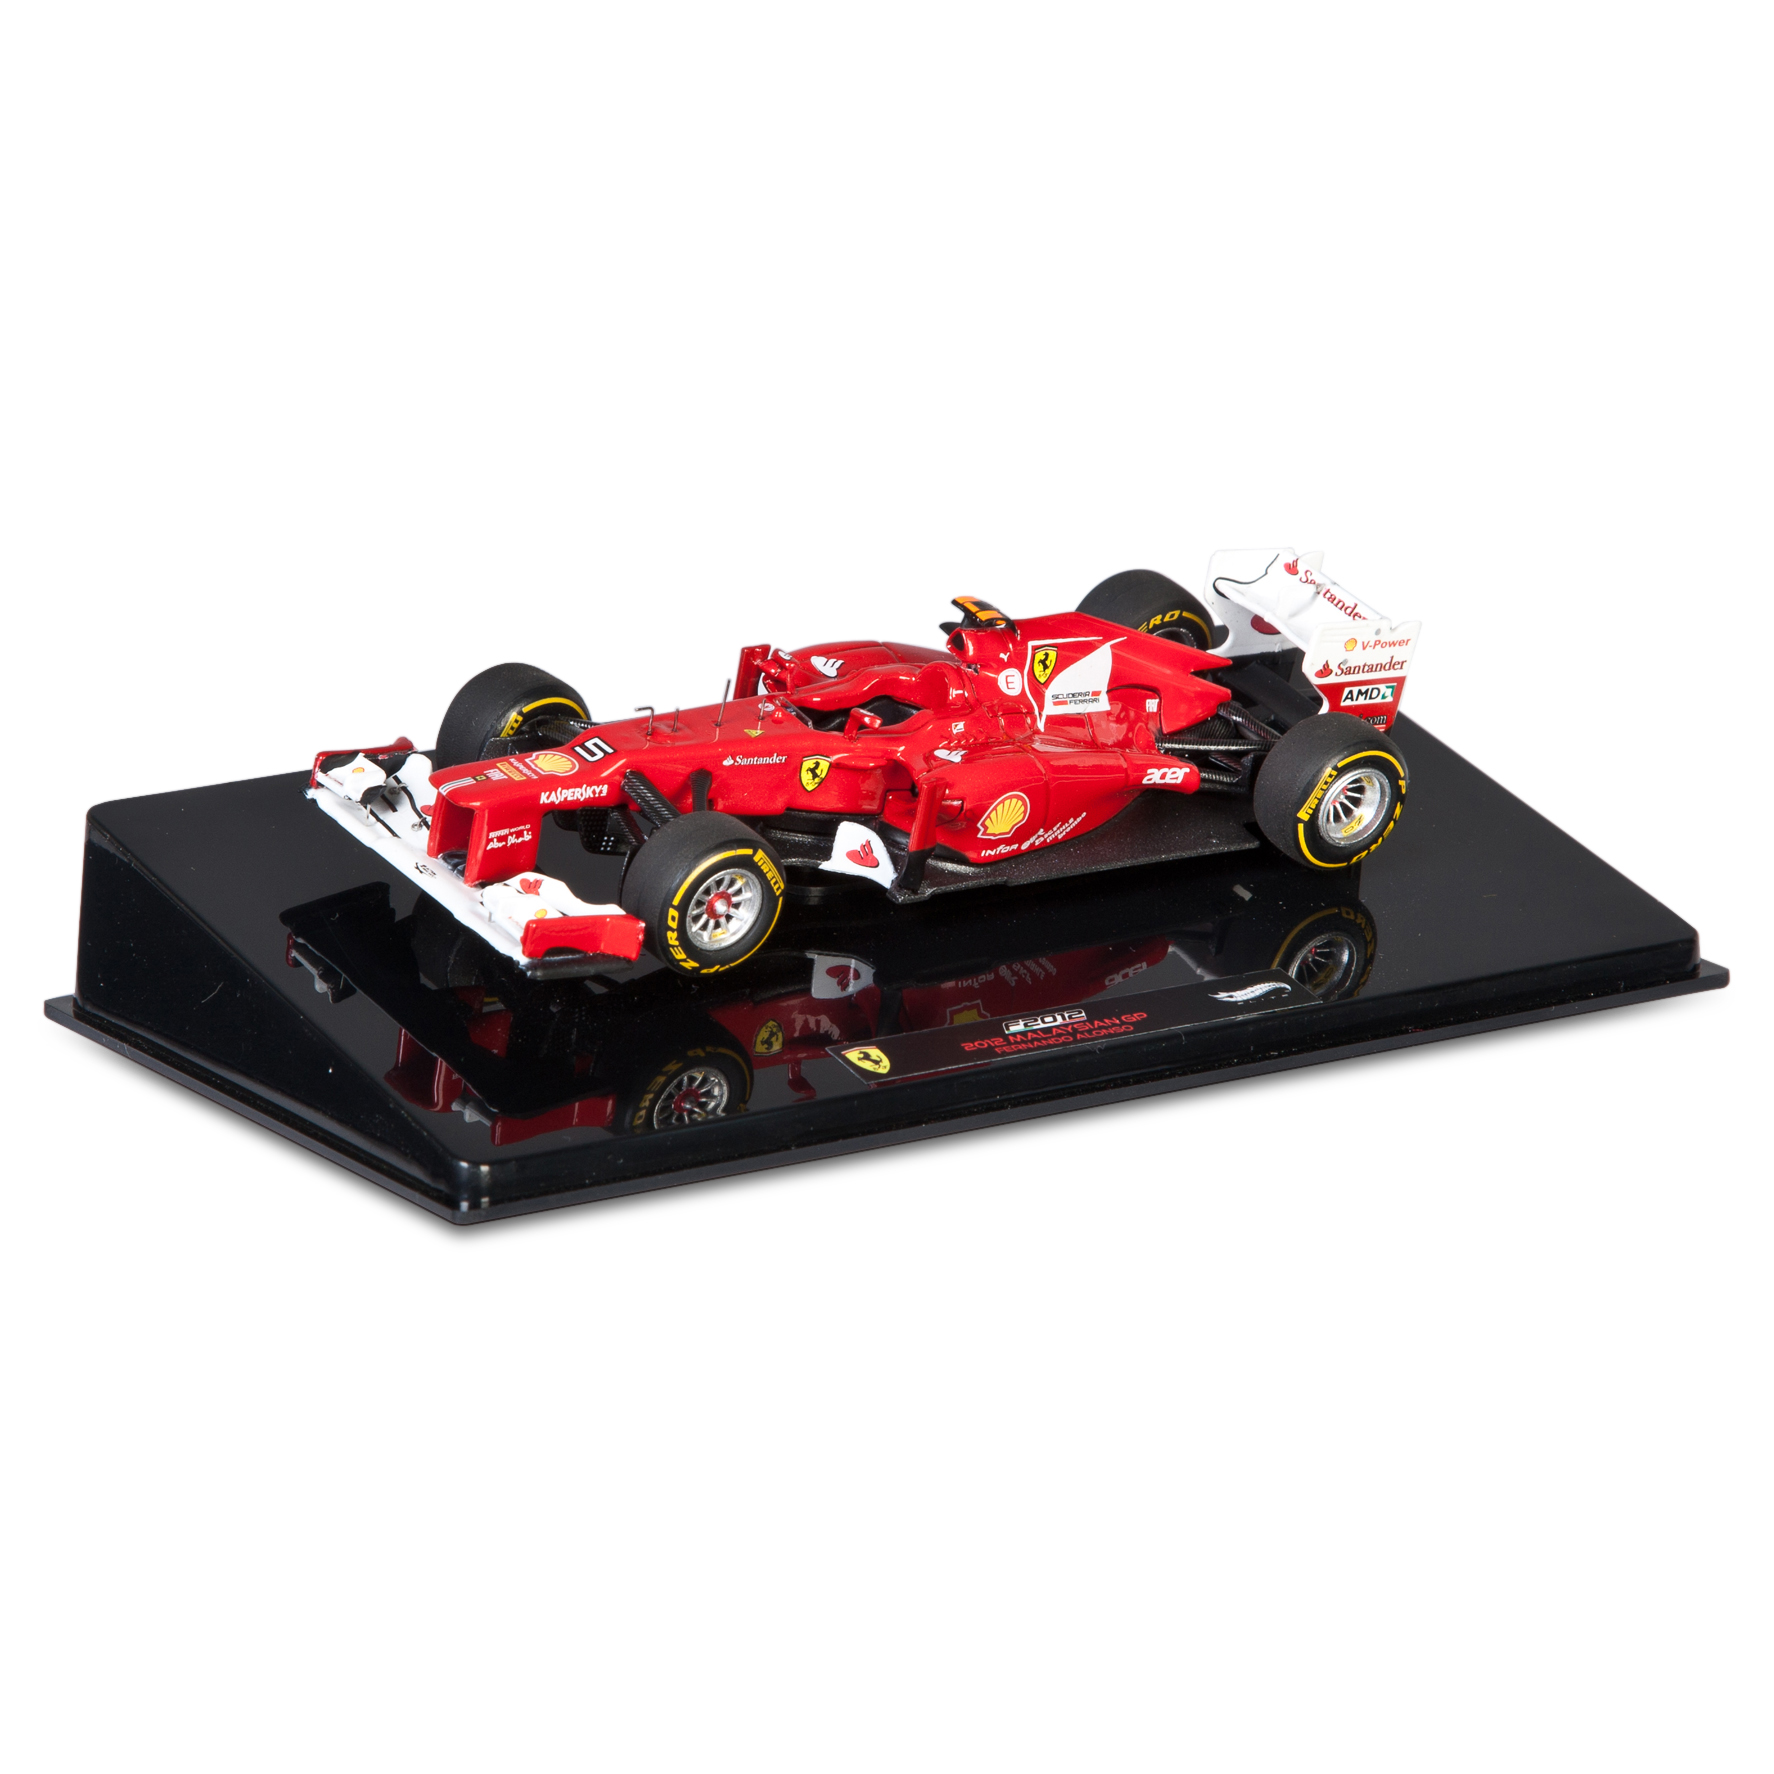 Scuderia Ferrari Scuderia F2012 - F. Alonso Super detailed version 1:43 Scale